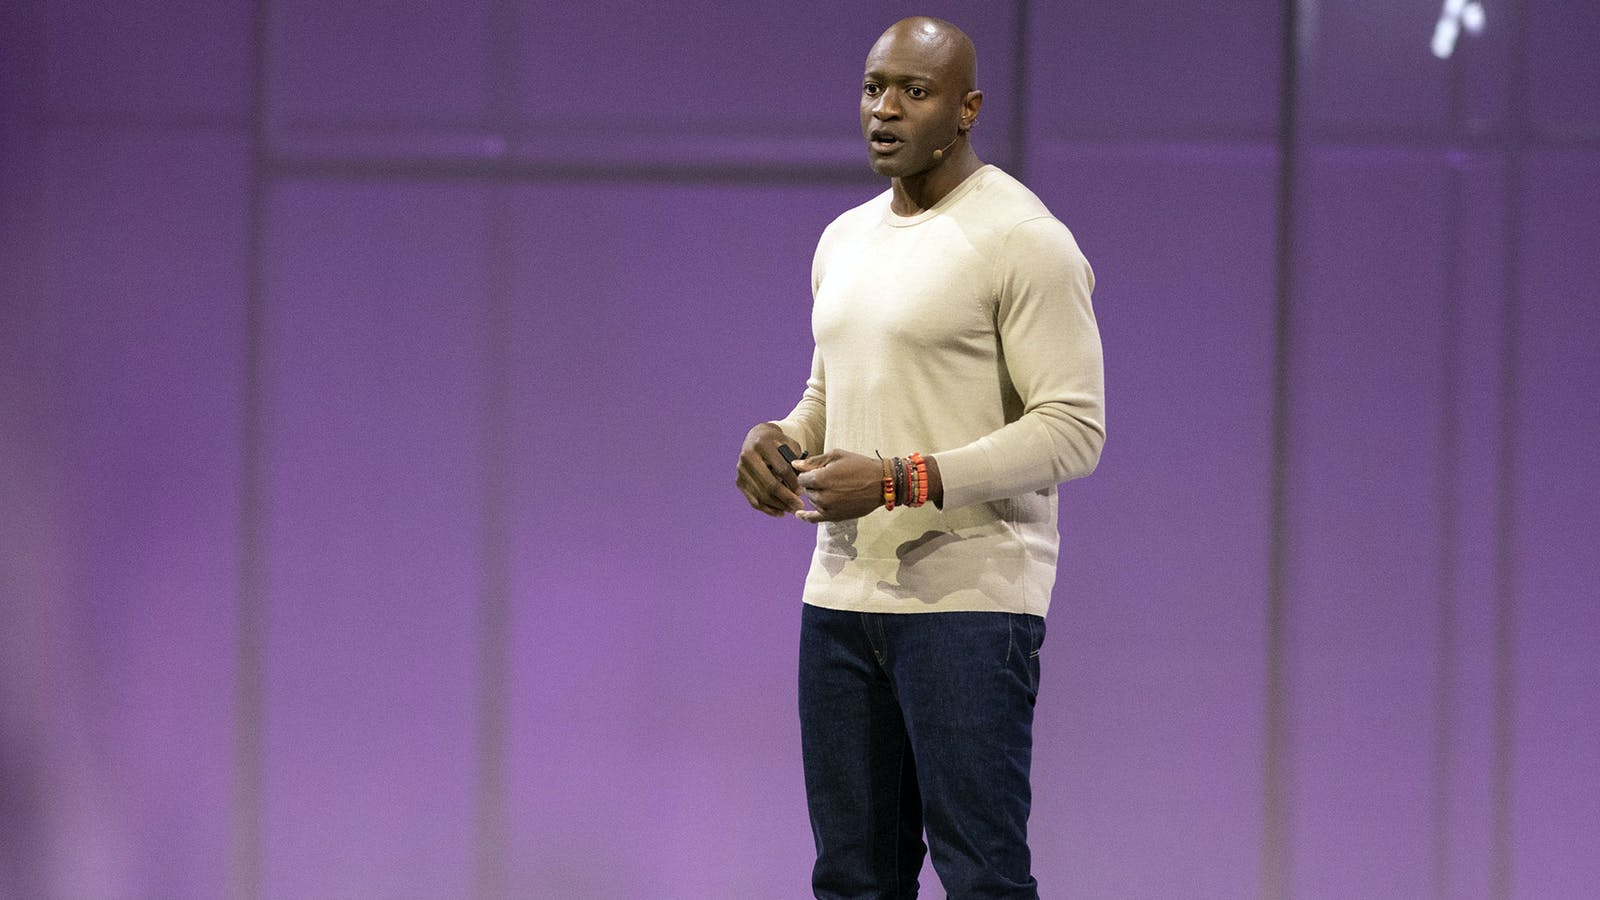 Facebook executive Ime Archibong, who heads a new products group that now includes Facebook's venture capital arm.